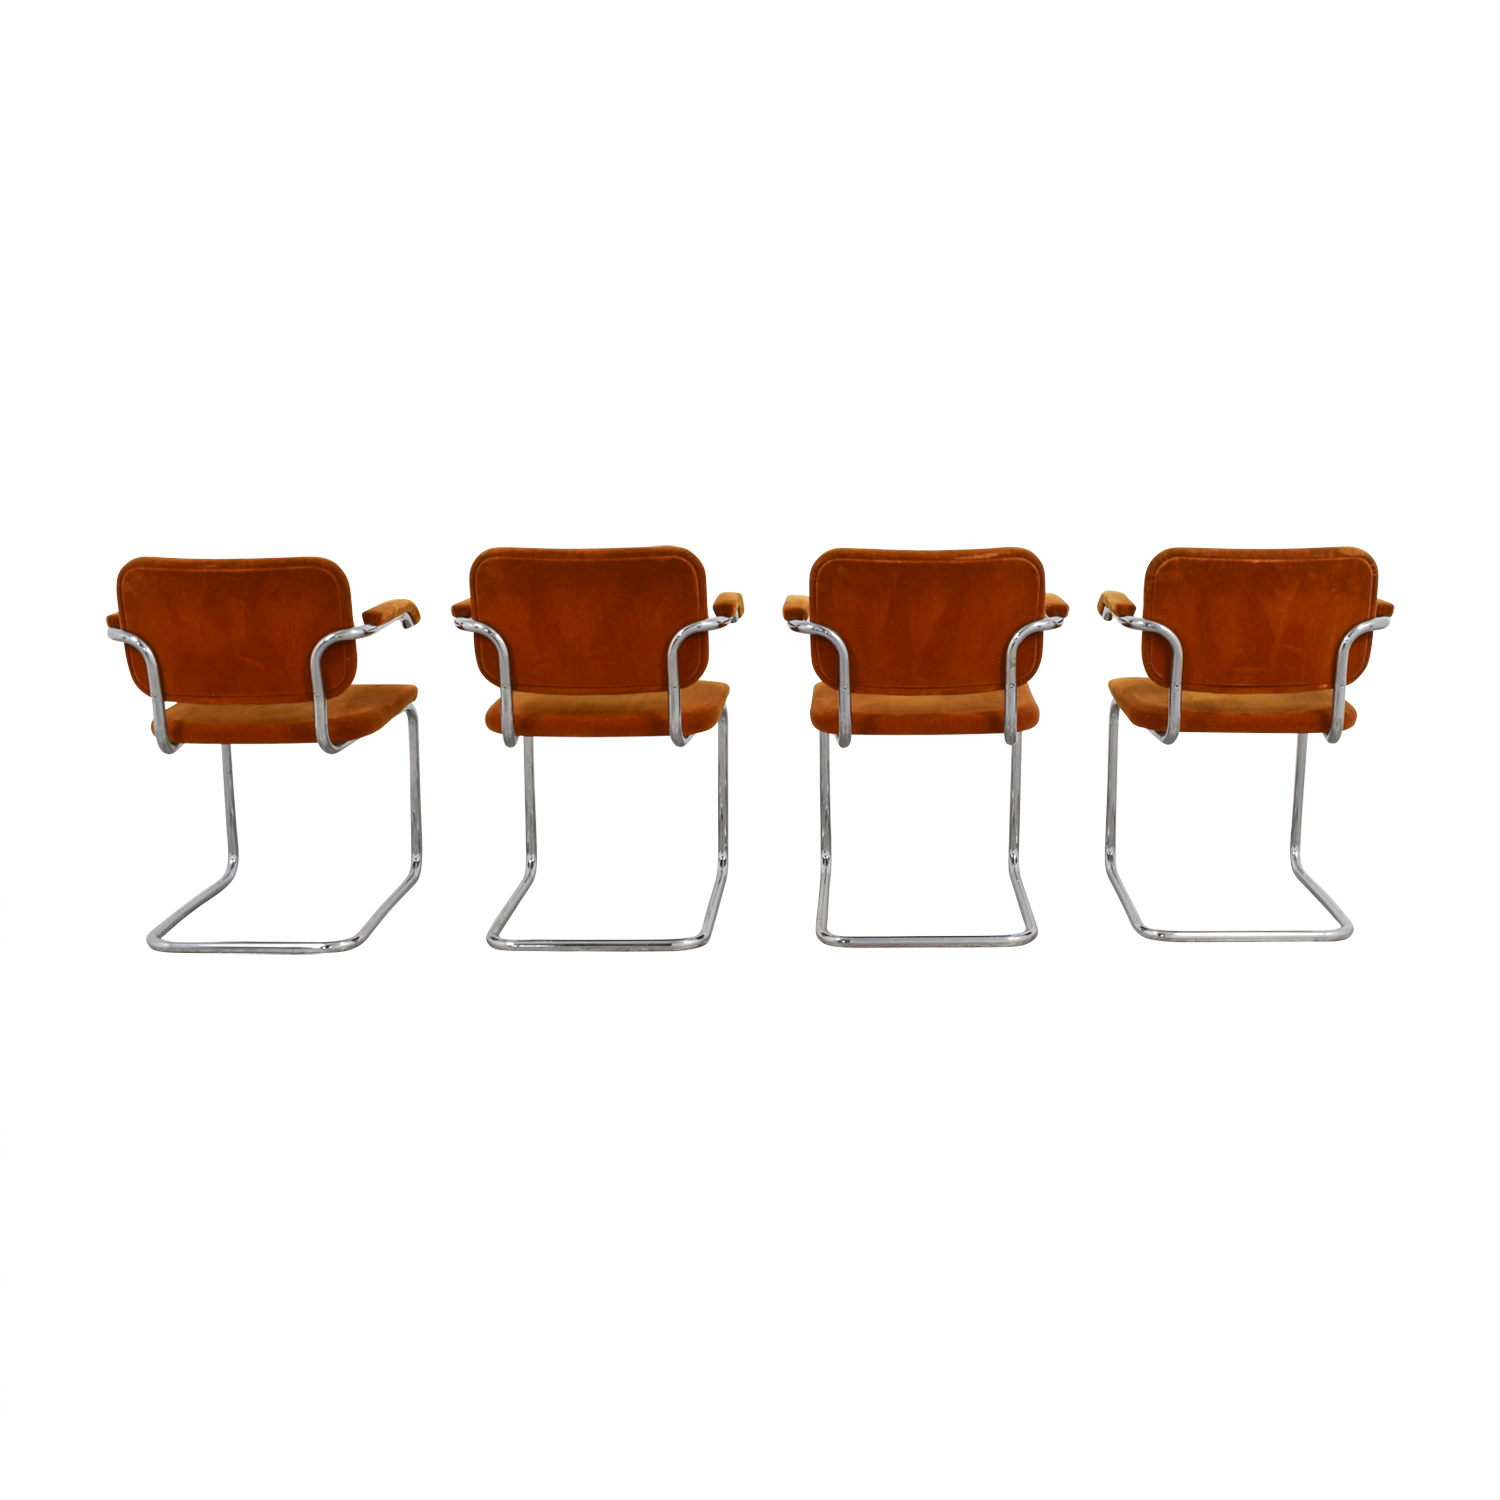 Knoll Knoll M. Breuer Cesca Chairs coupon